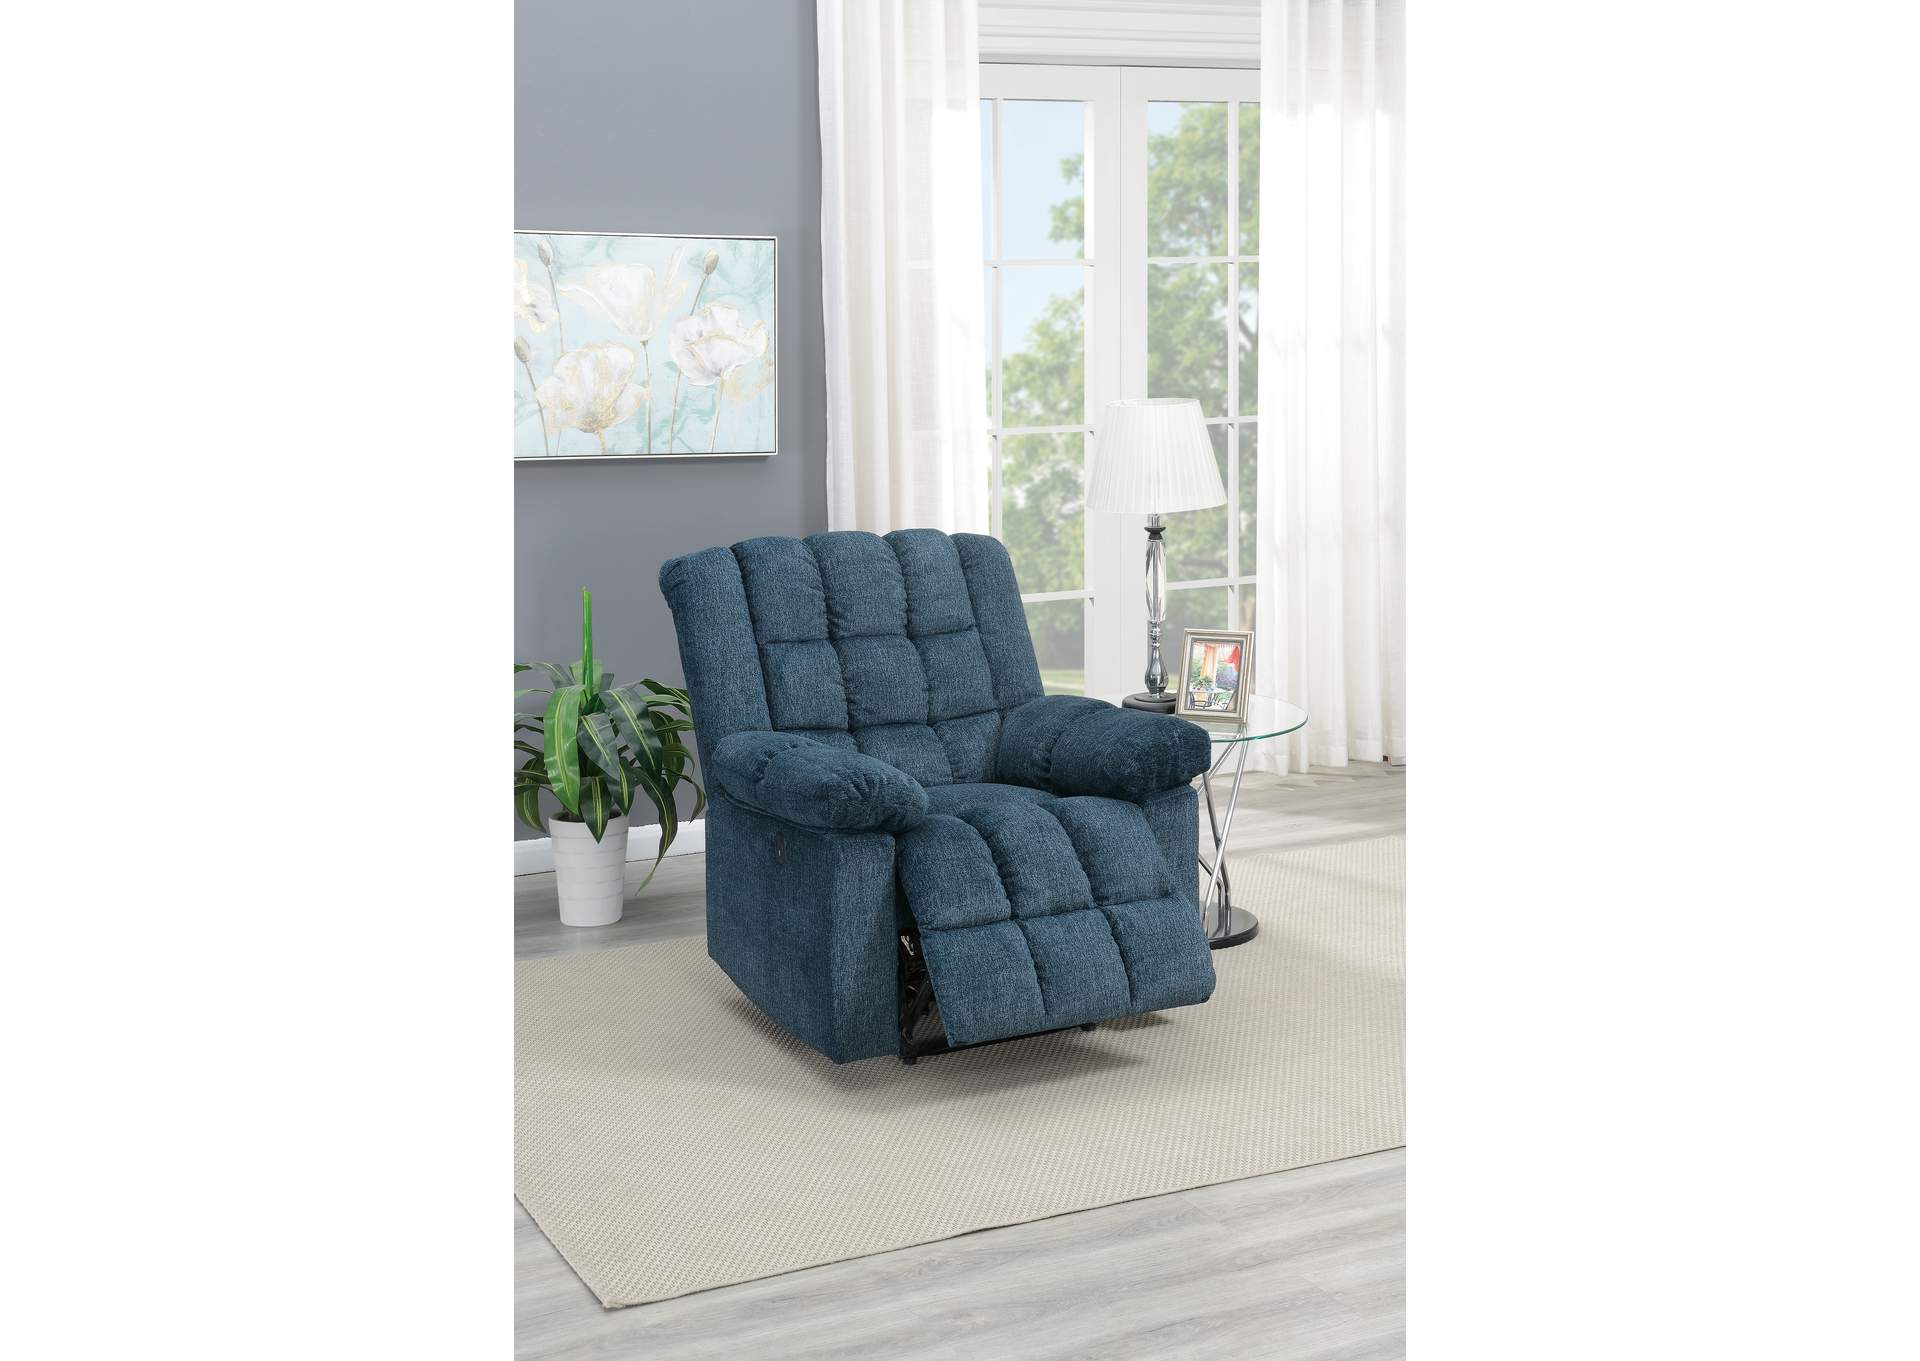 Taiyus Dark Blue Chenille Power Recliner,Poundex